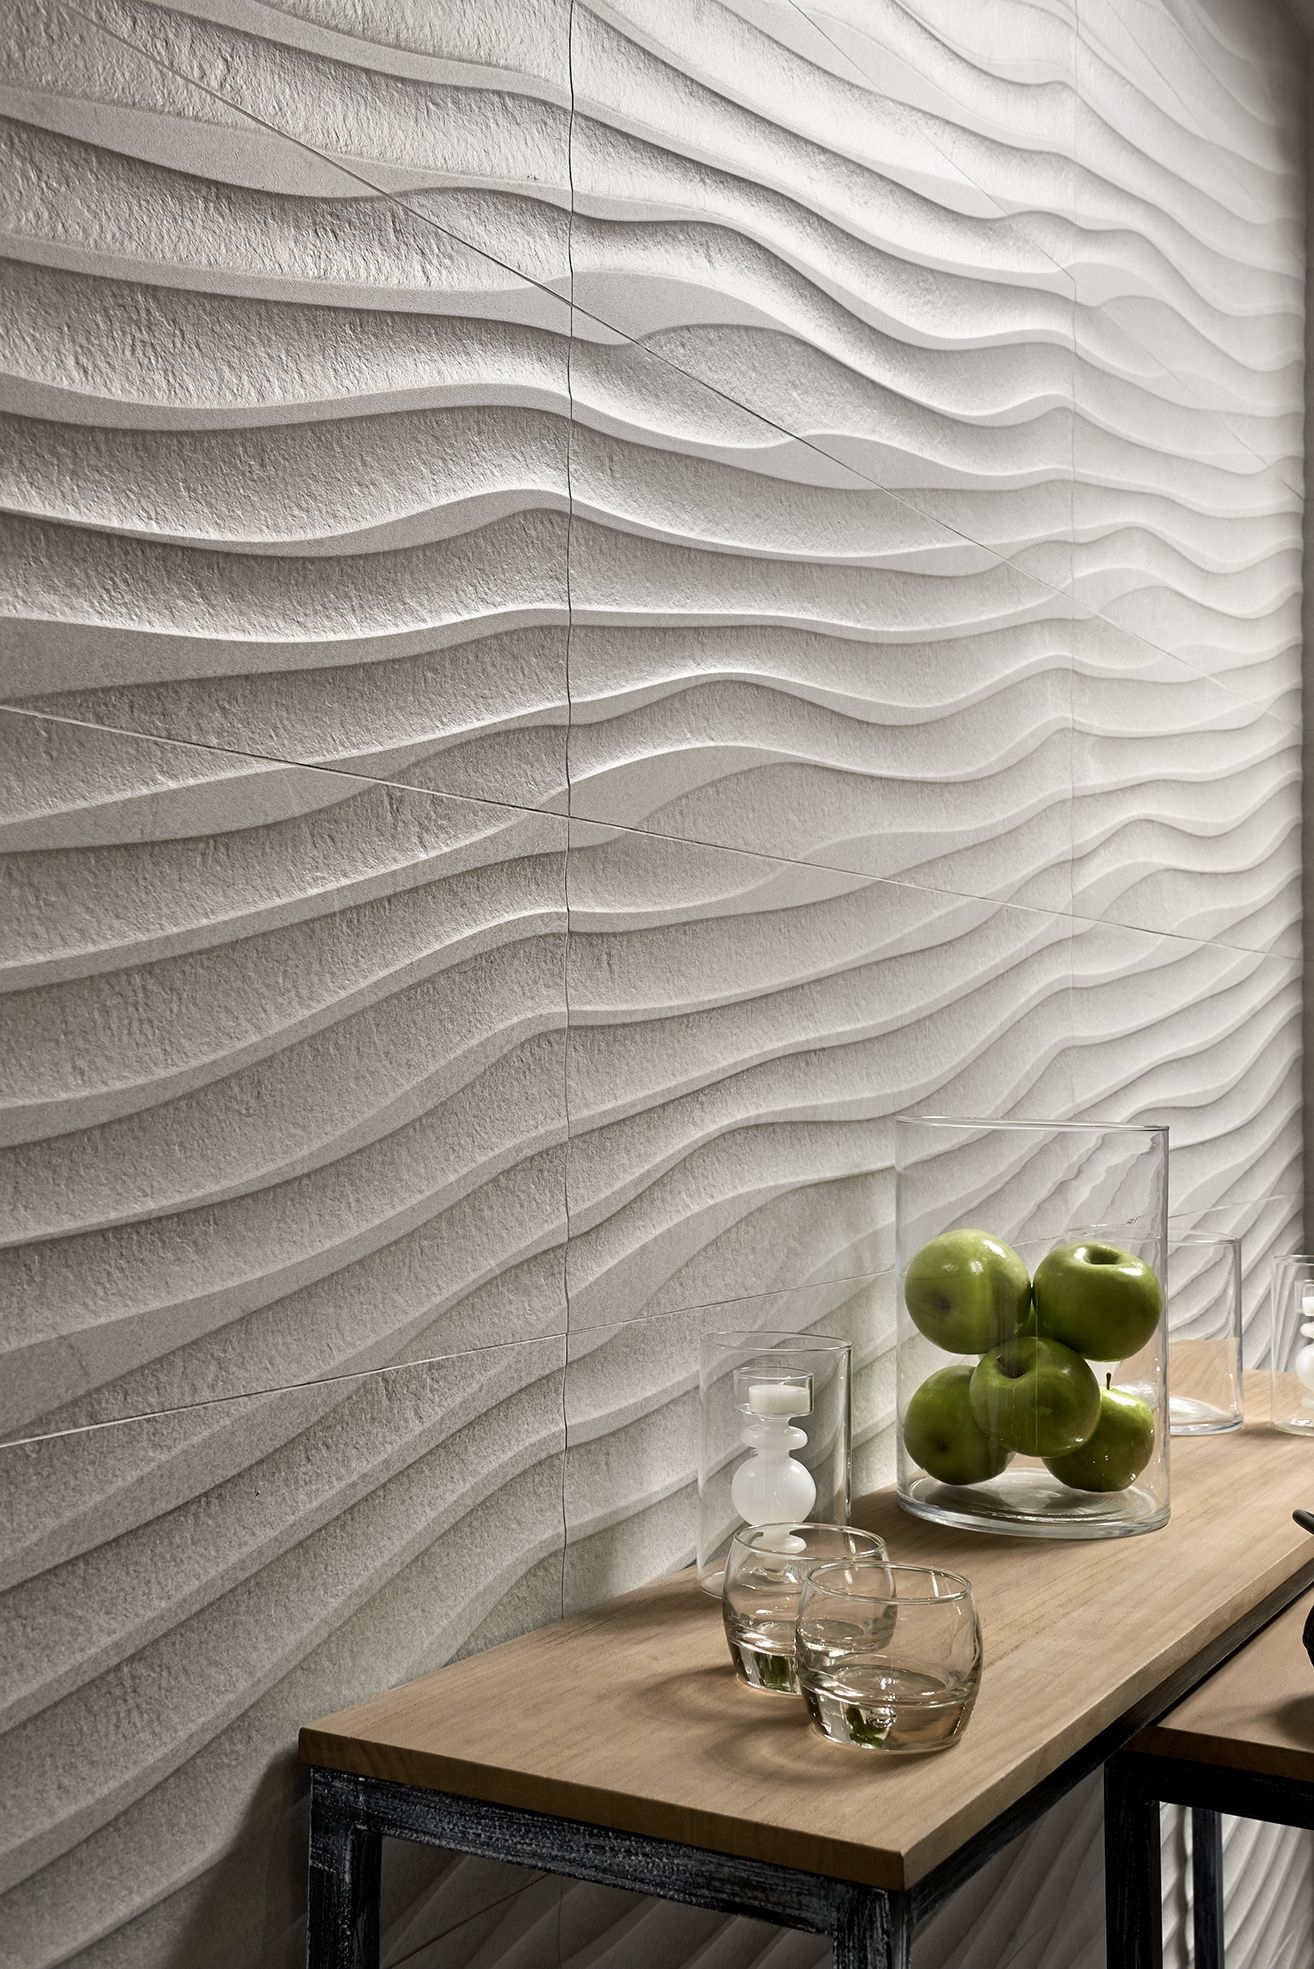 Mixit Concept Blanco Origin Spain Interior Walls Tiles Texture Interior